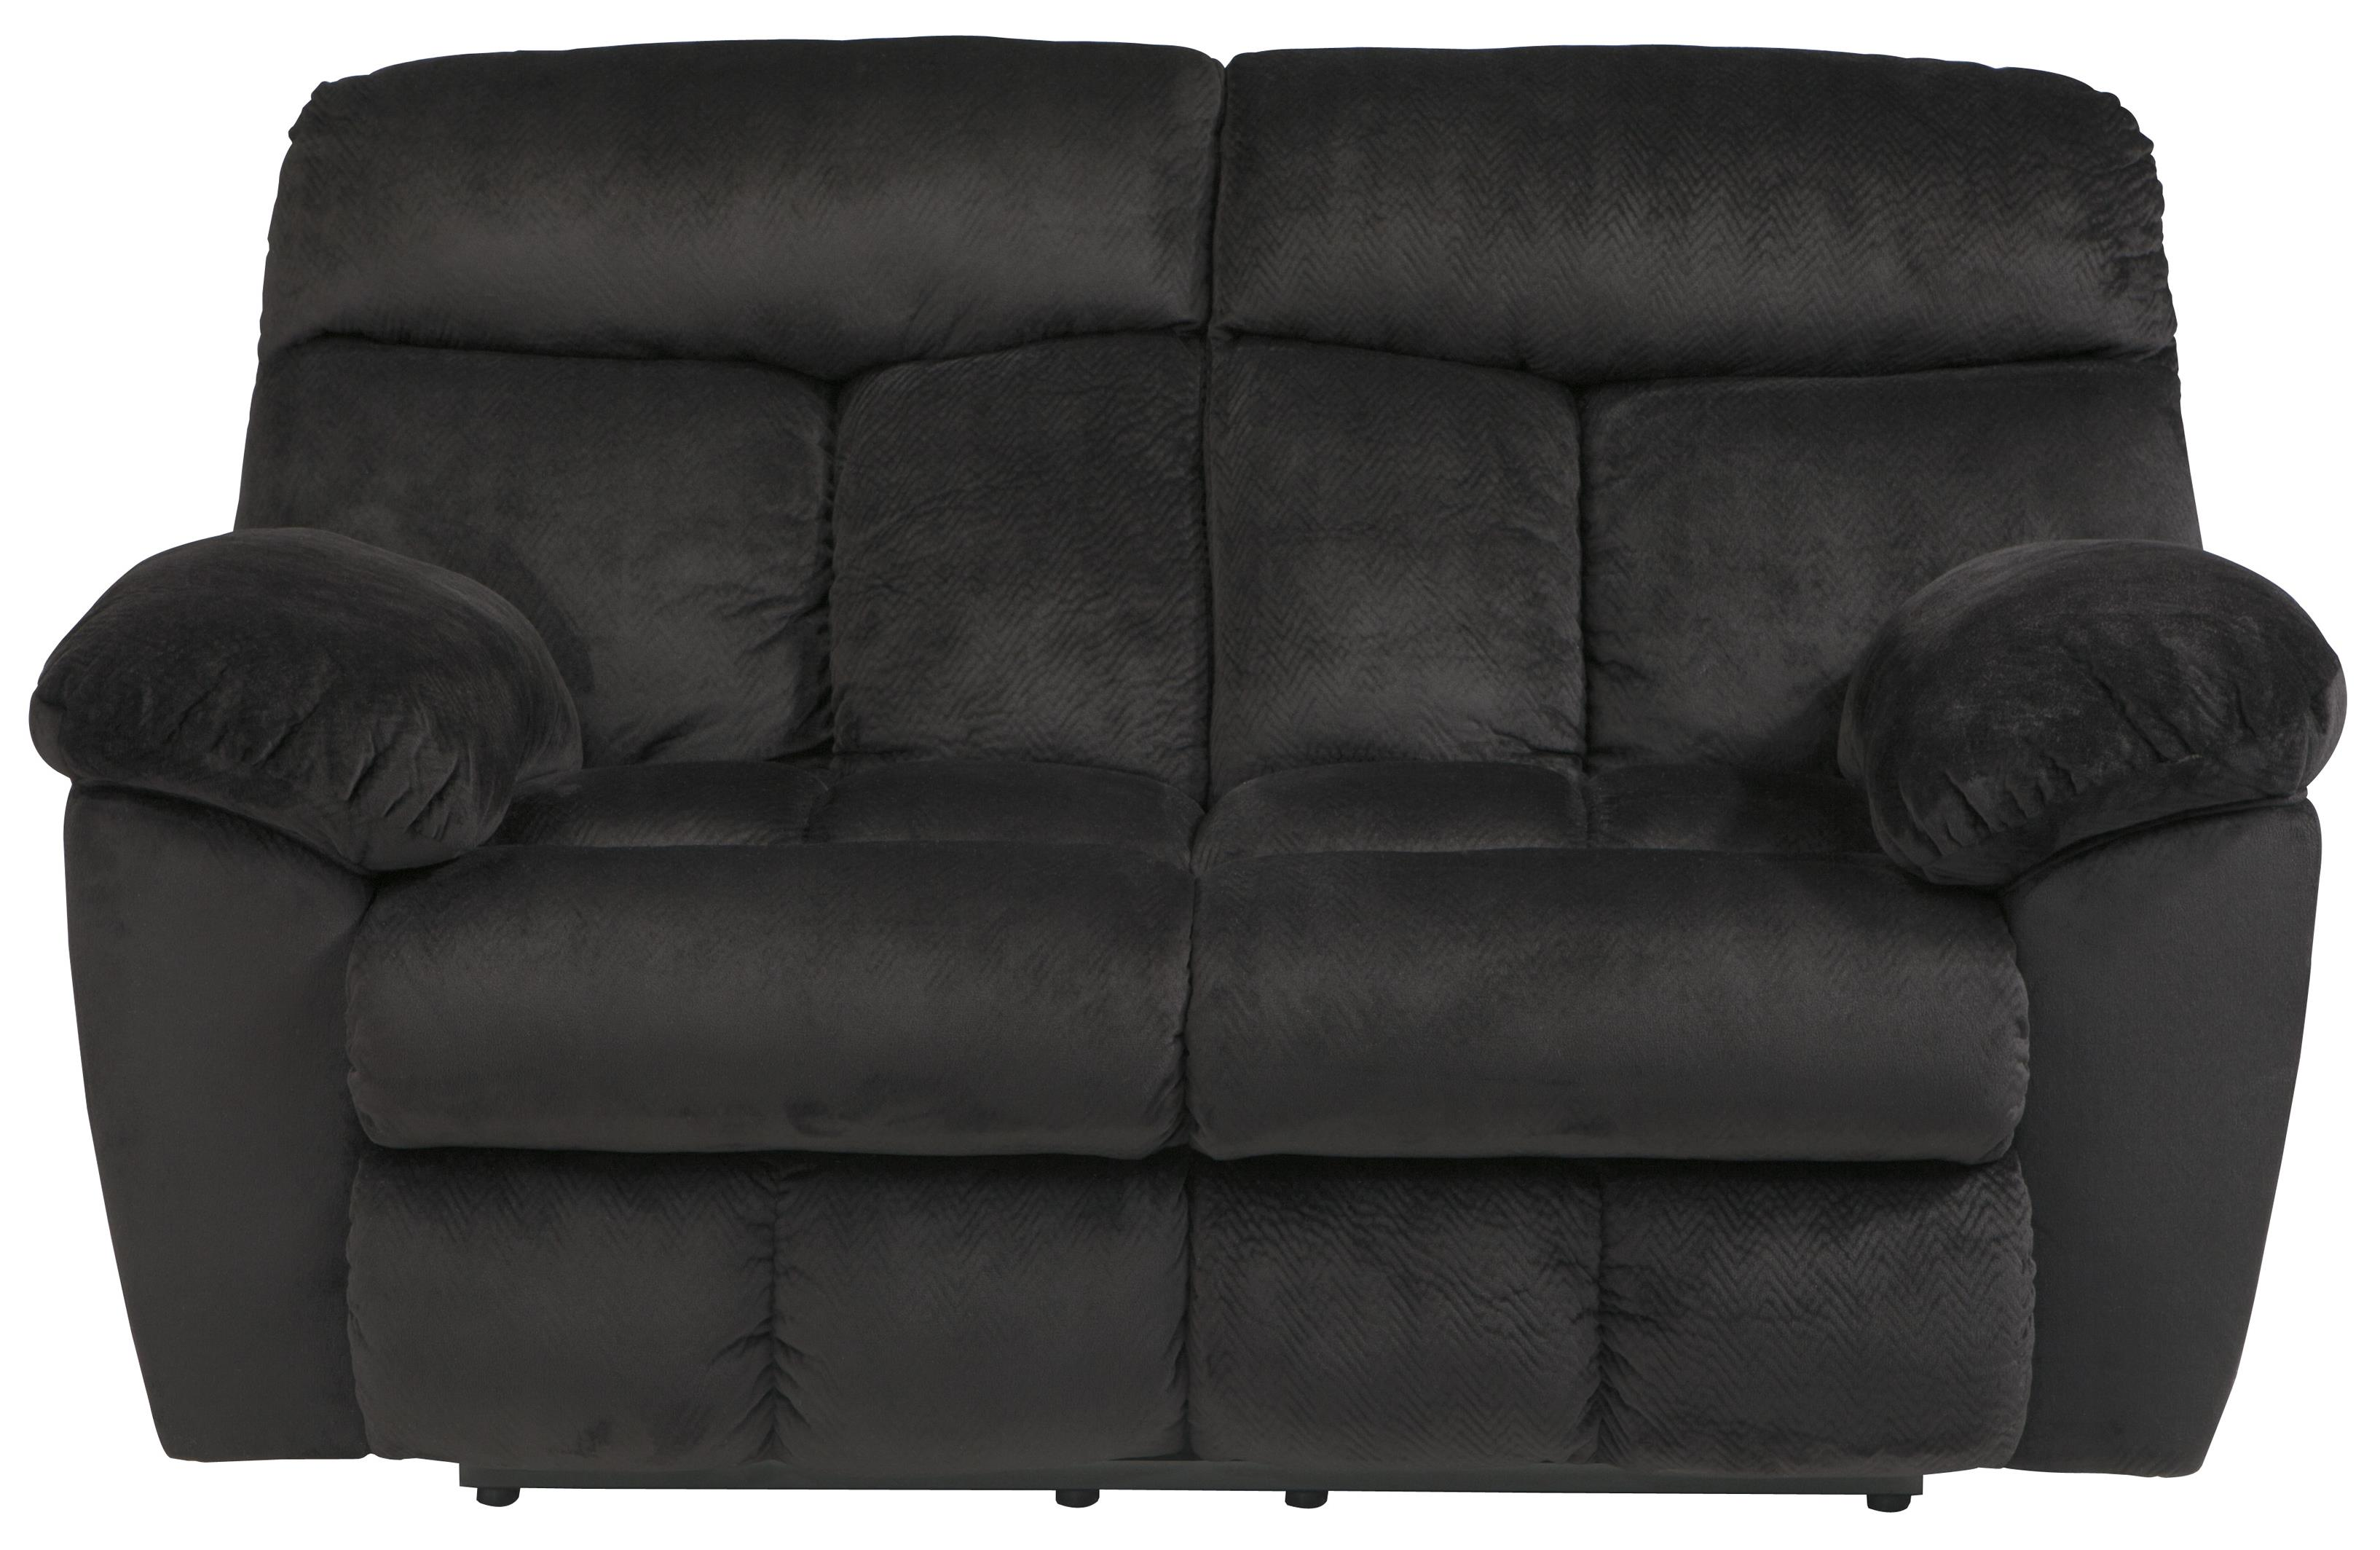 Signature Design by Ashley Saul Reclining Power Loveseat - Item Number: 2230174